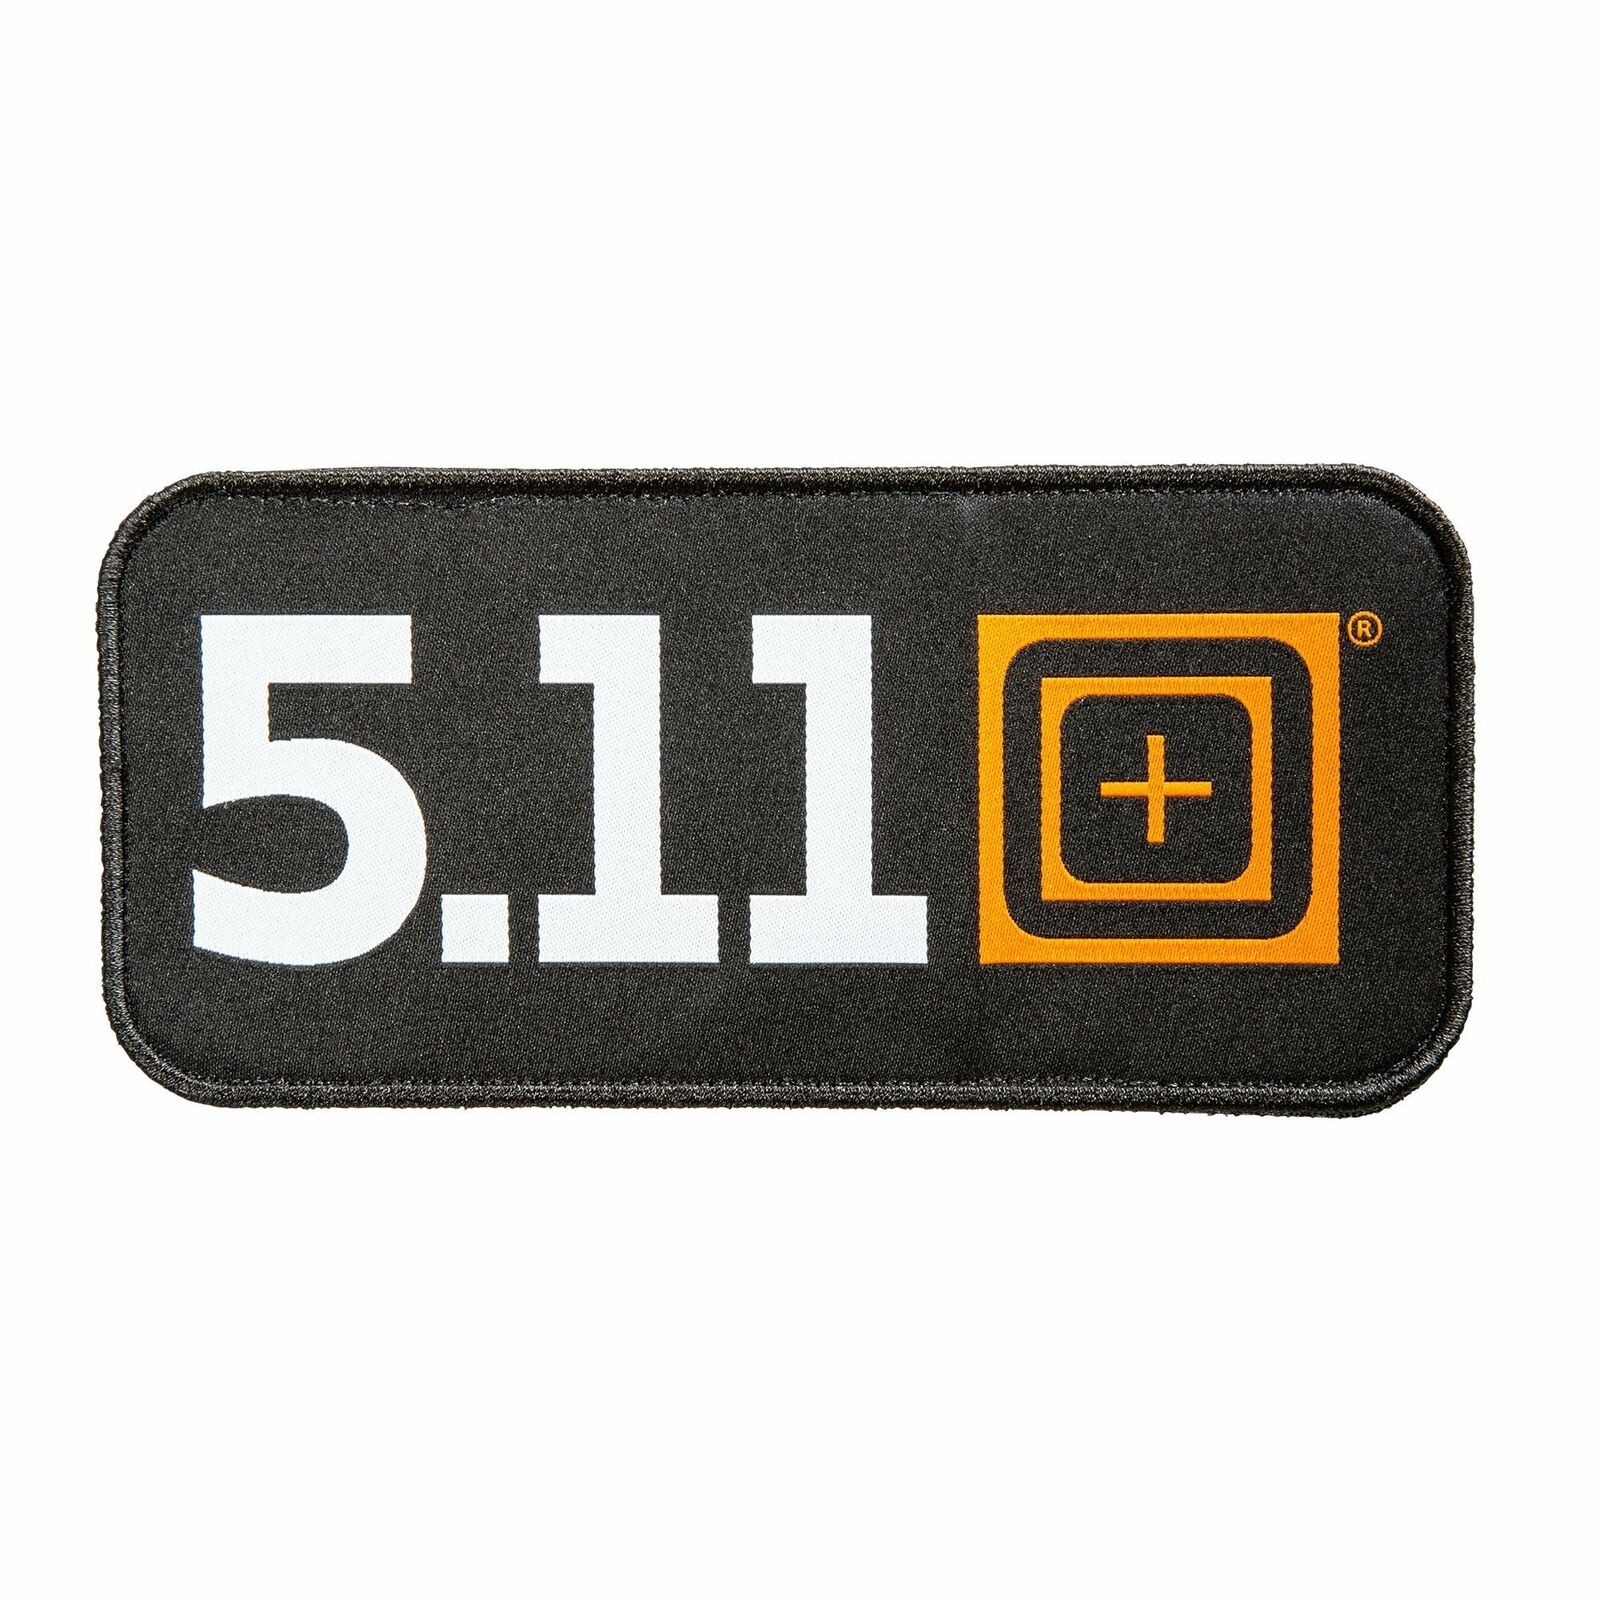 6x2 Custom Tactical ID Patch on 500 Denier Nylon Fabric with Hook Backing